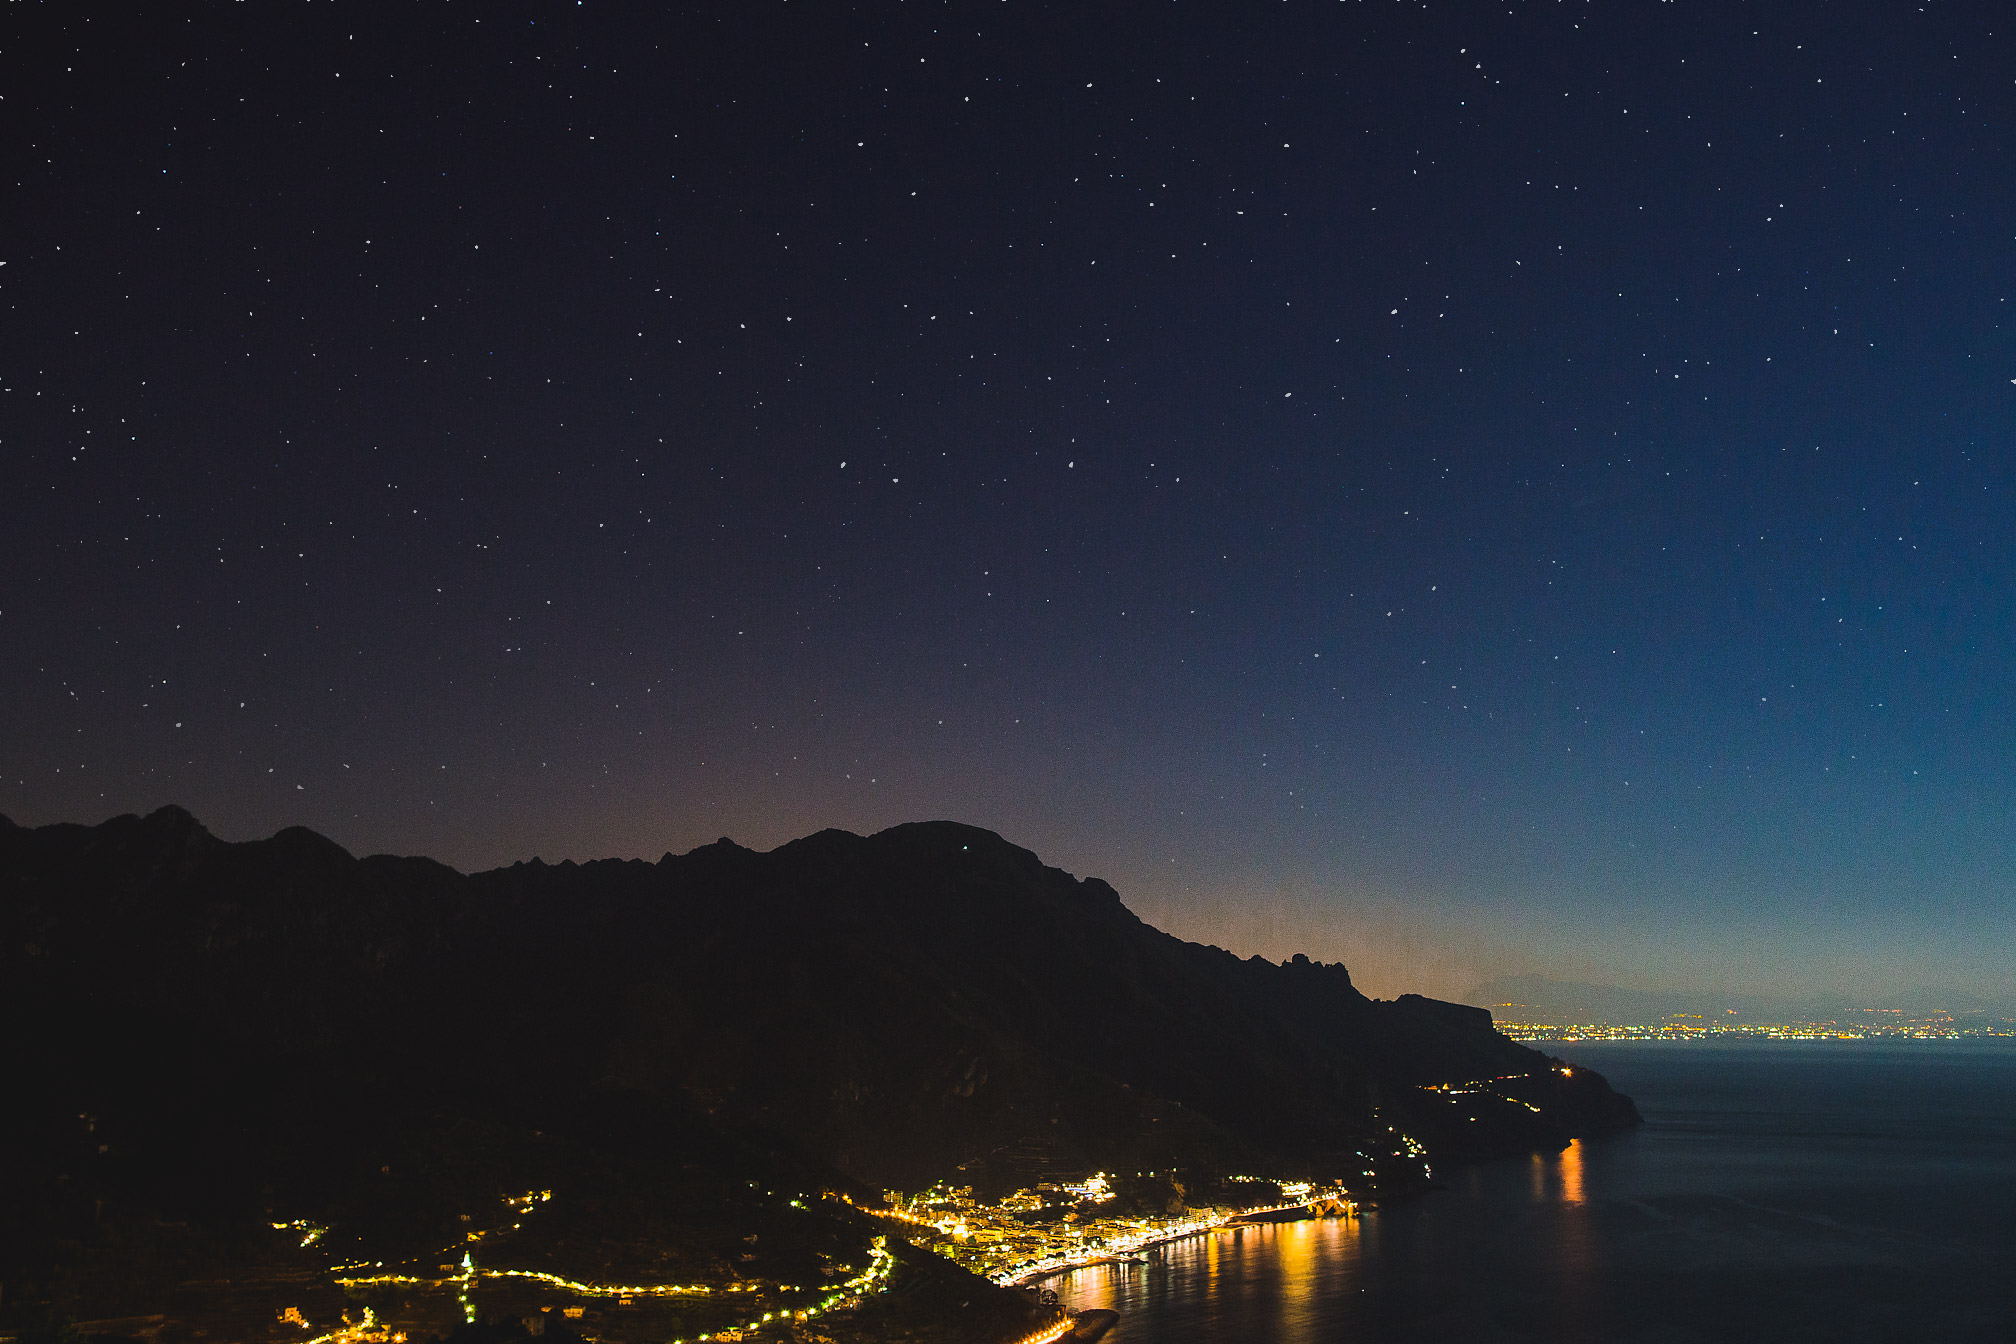 Ravello at night